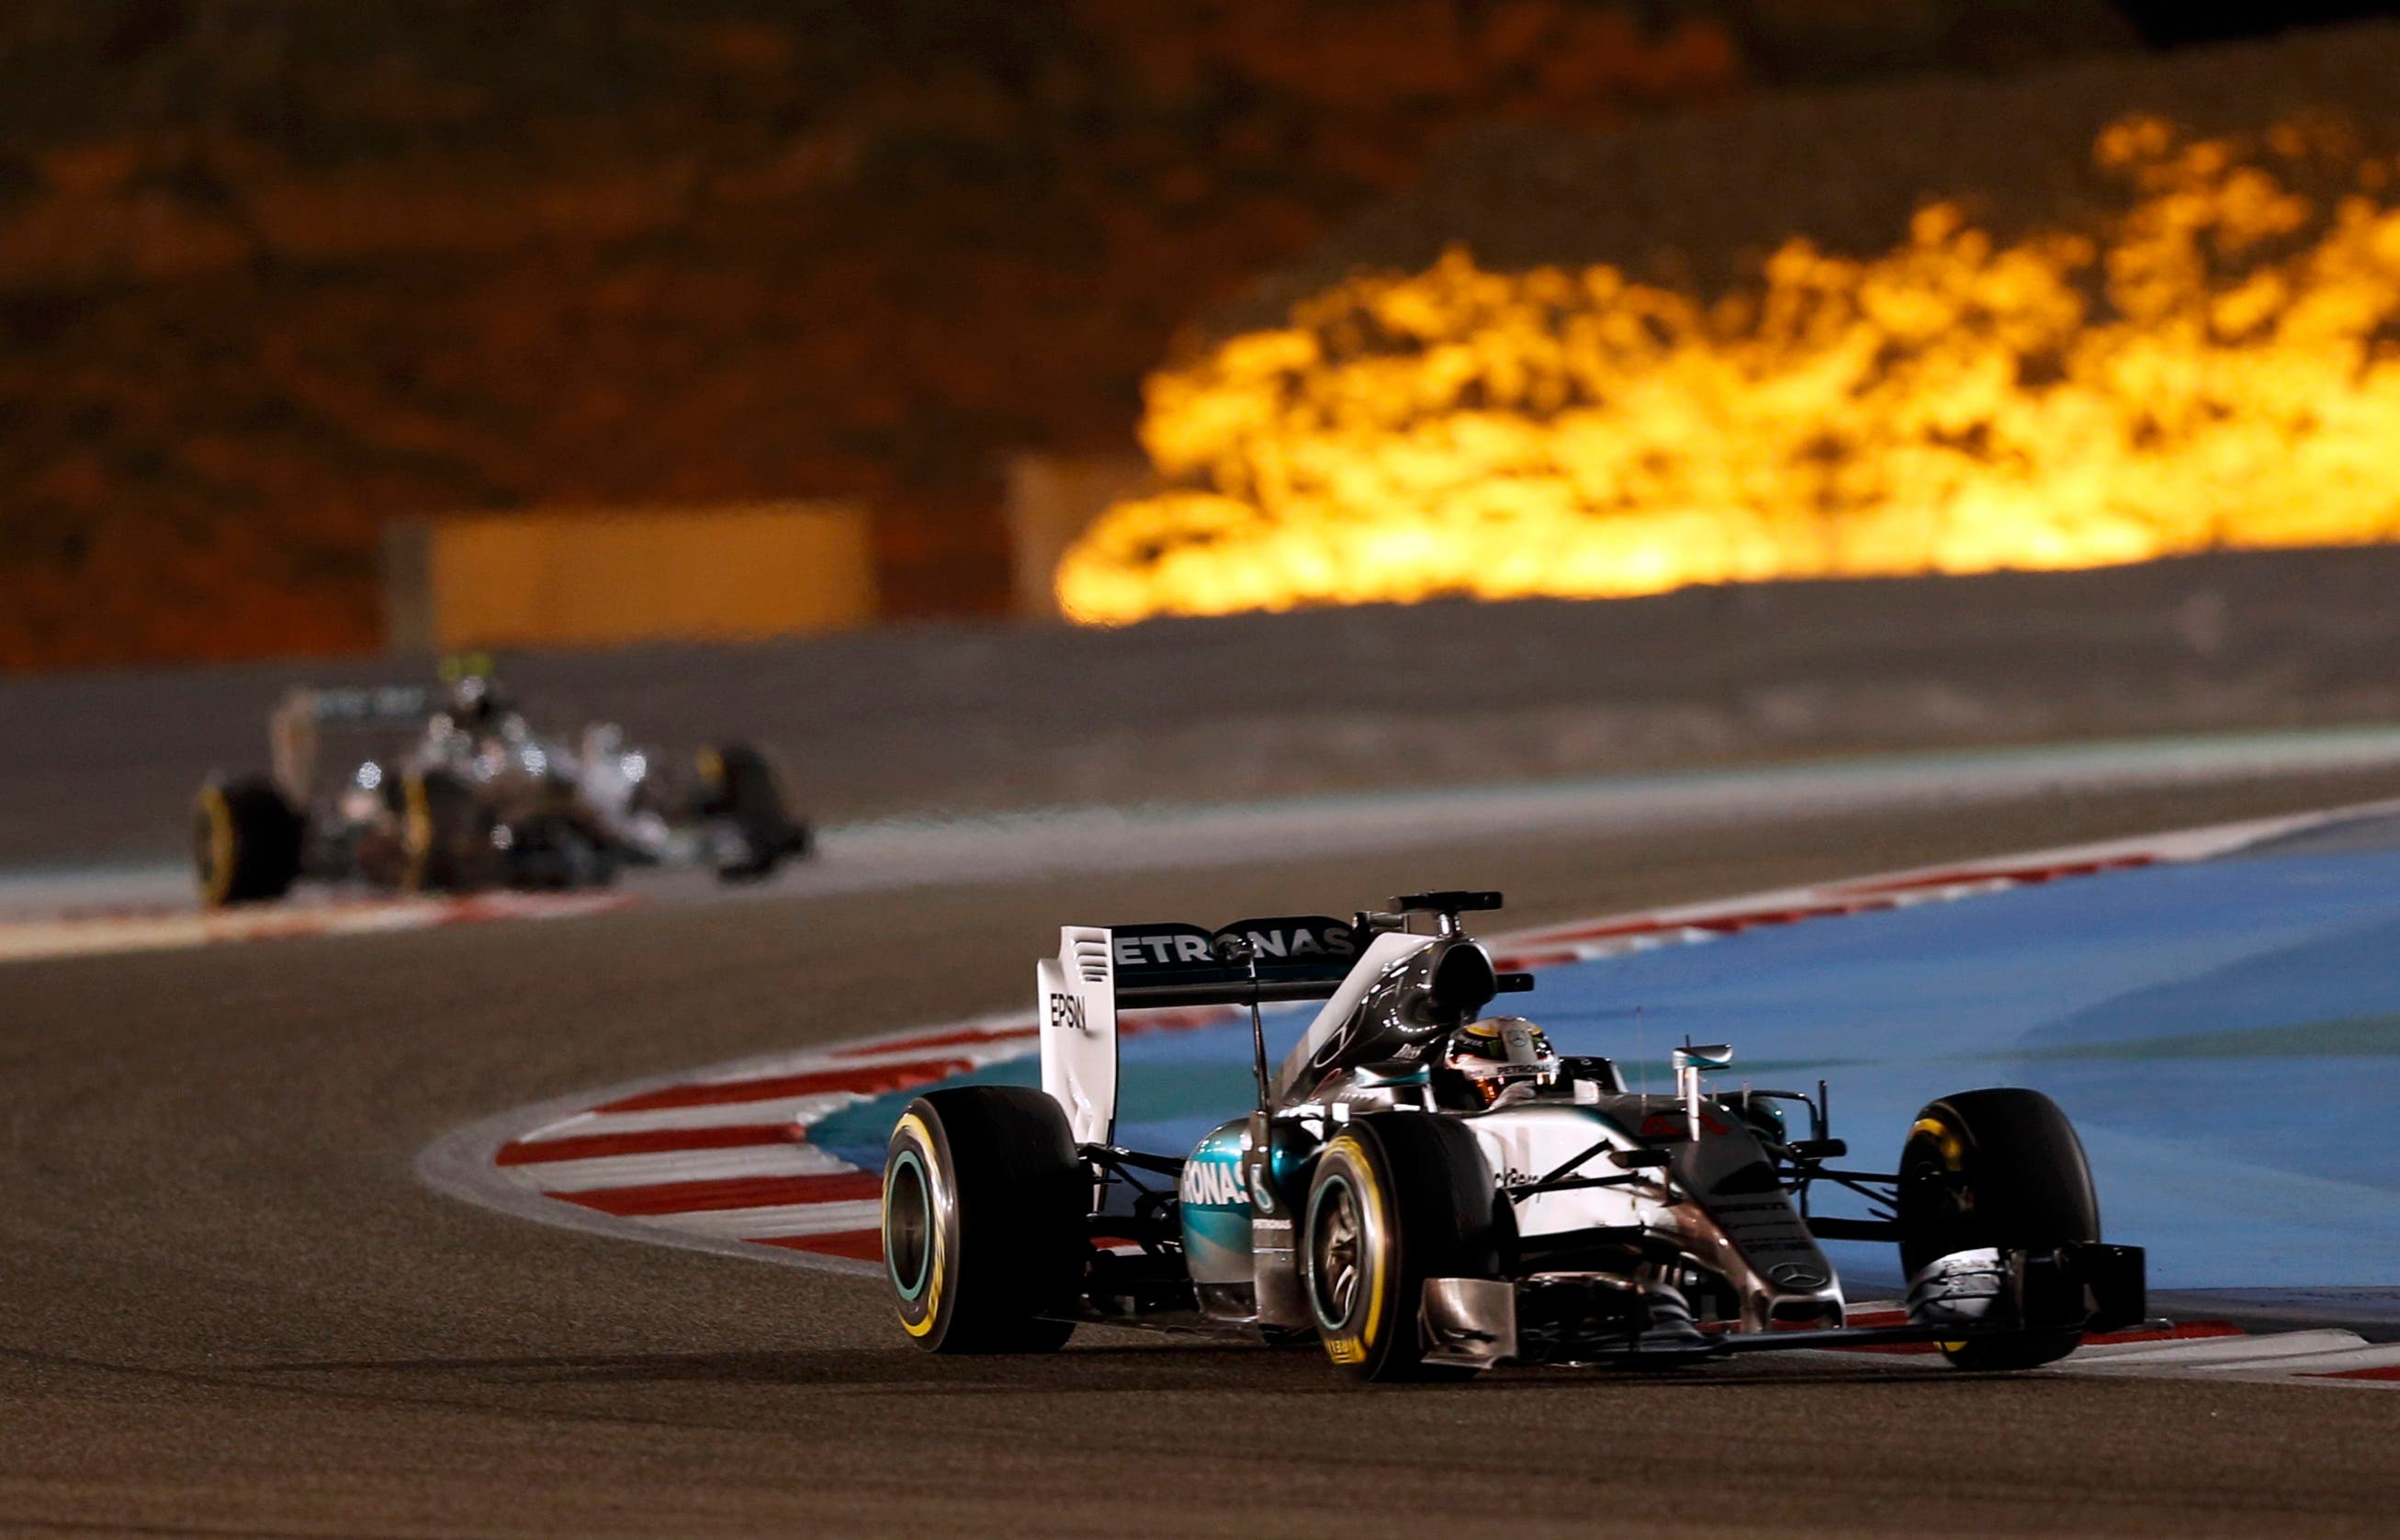 Mercedes Formula One driver Lewis Hamilton (R) of Britain drives during Bahrain's F1 Grand Prix at Bahrain International Circuit, south of Manama April 19, 2015. (Reuters)